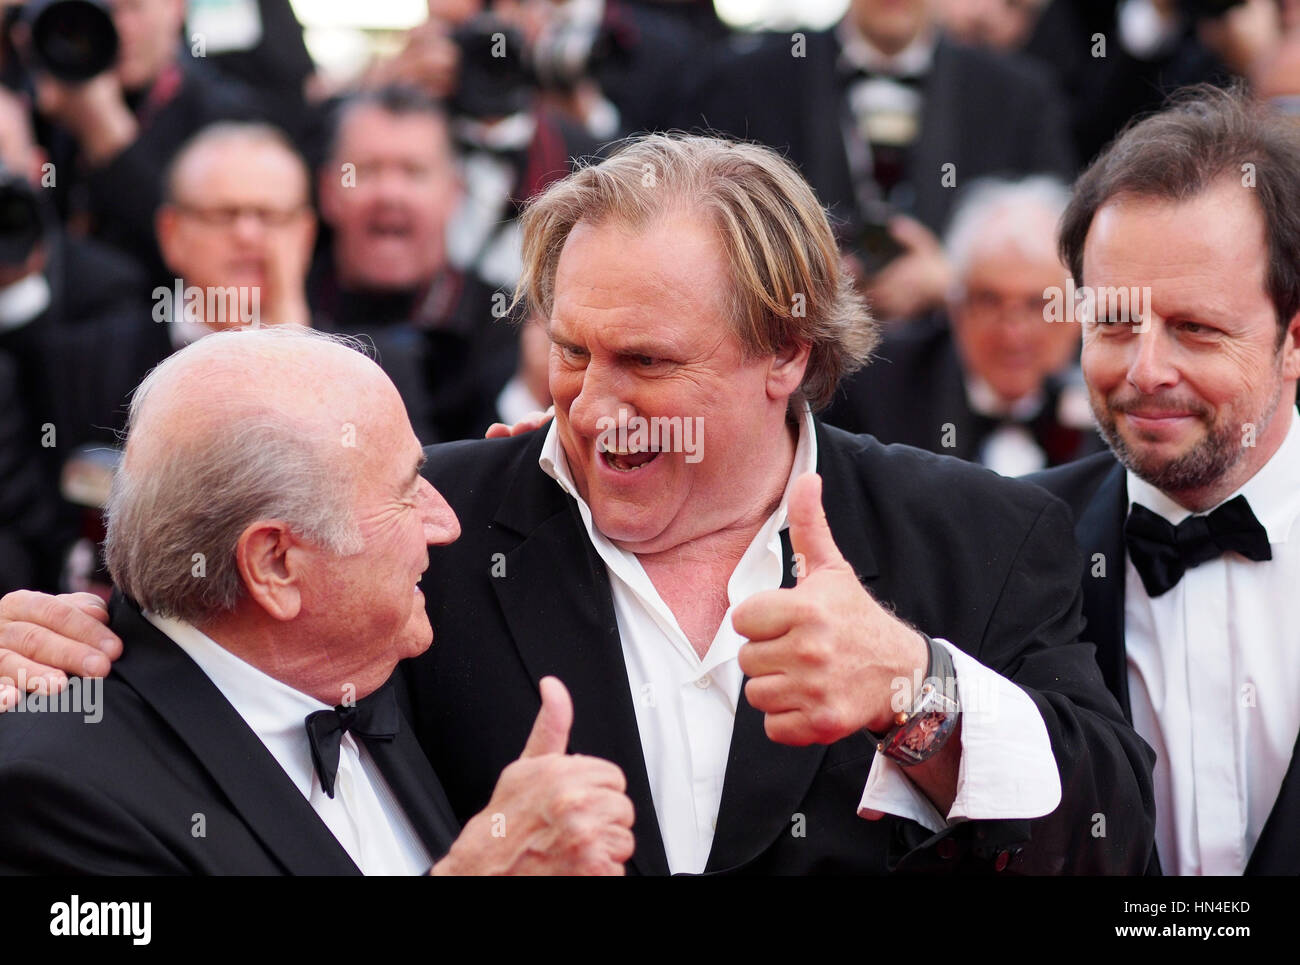 FIFA President Sepp Blatter, Gerard Depardieu and director Frederic Auburtin attend the premiere of The Homesman - Stock Image